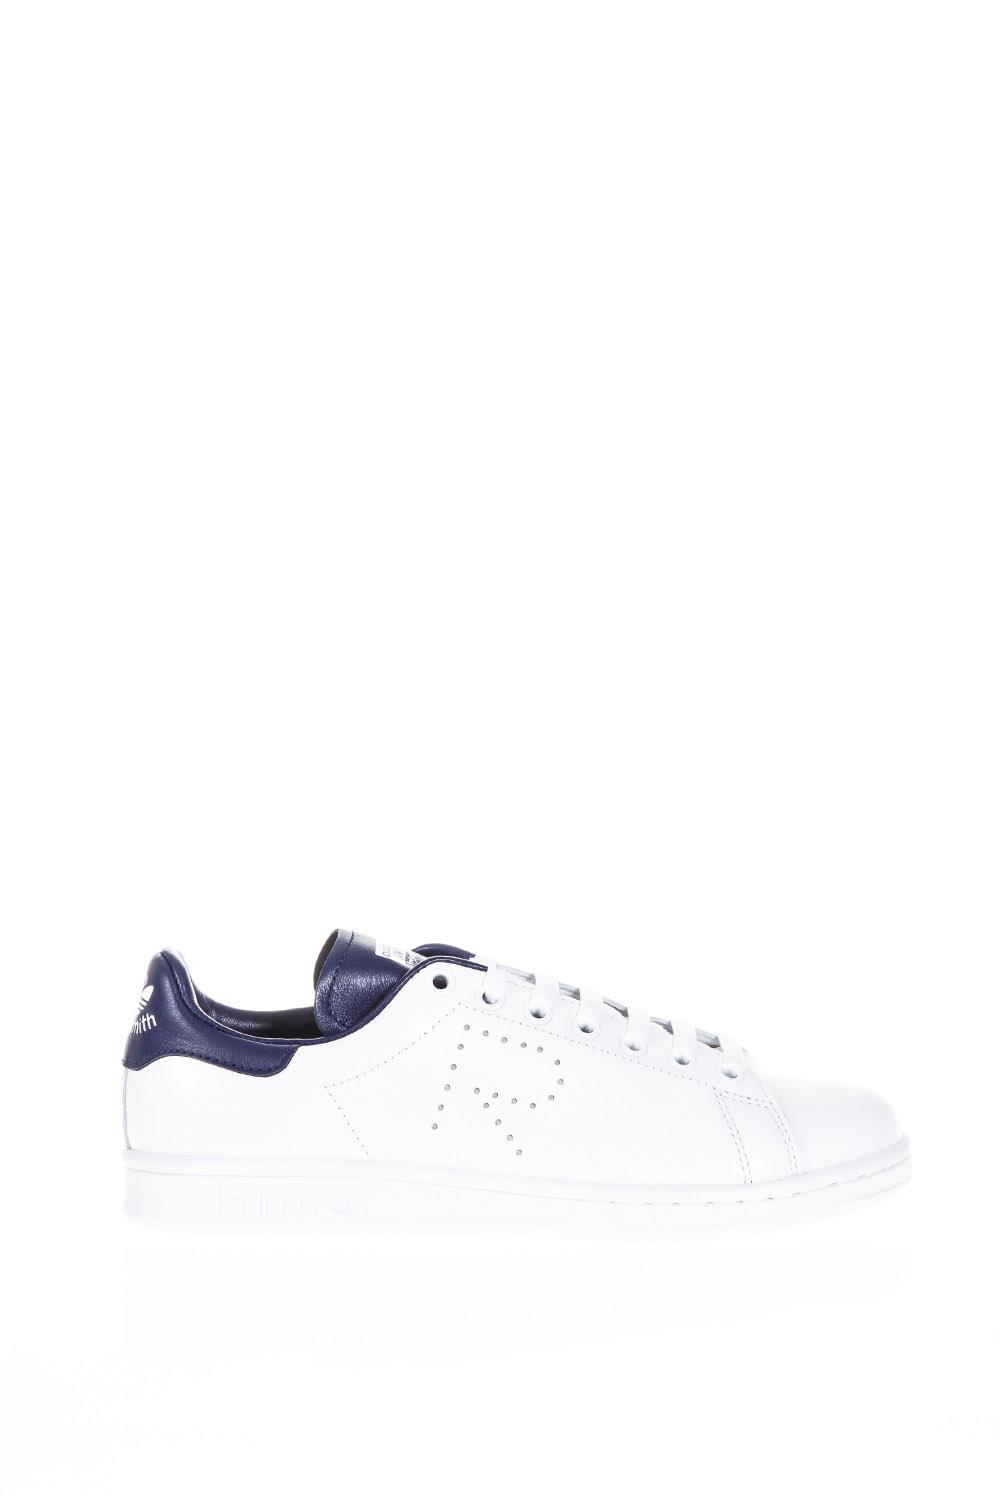 buy online 7bd67 de2ae RS STAN SMITH TWO COLORS SNEAKERS IN LEATHER SS 2018